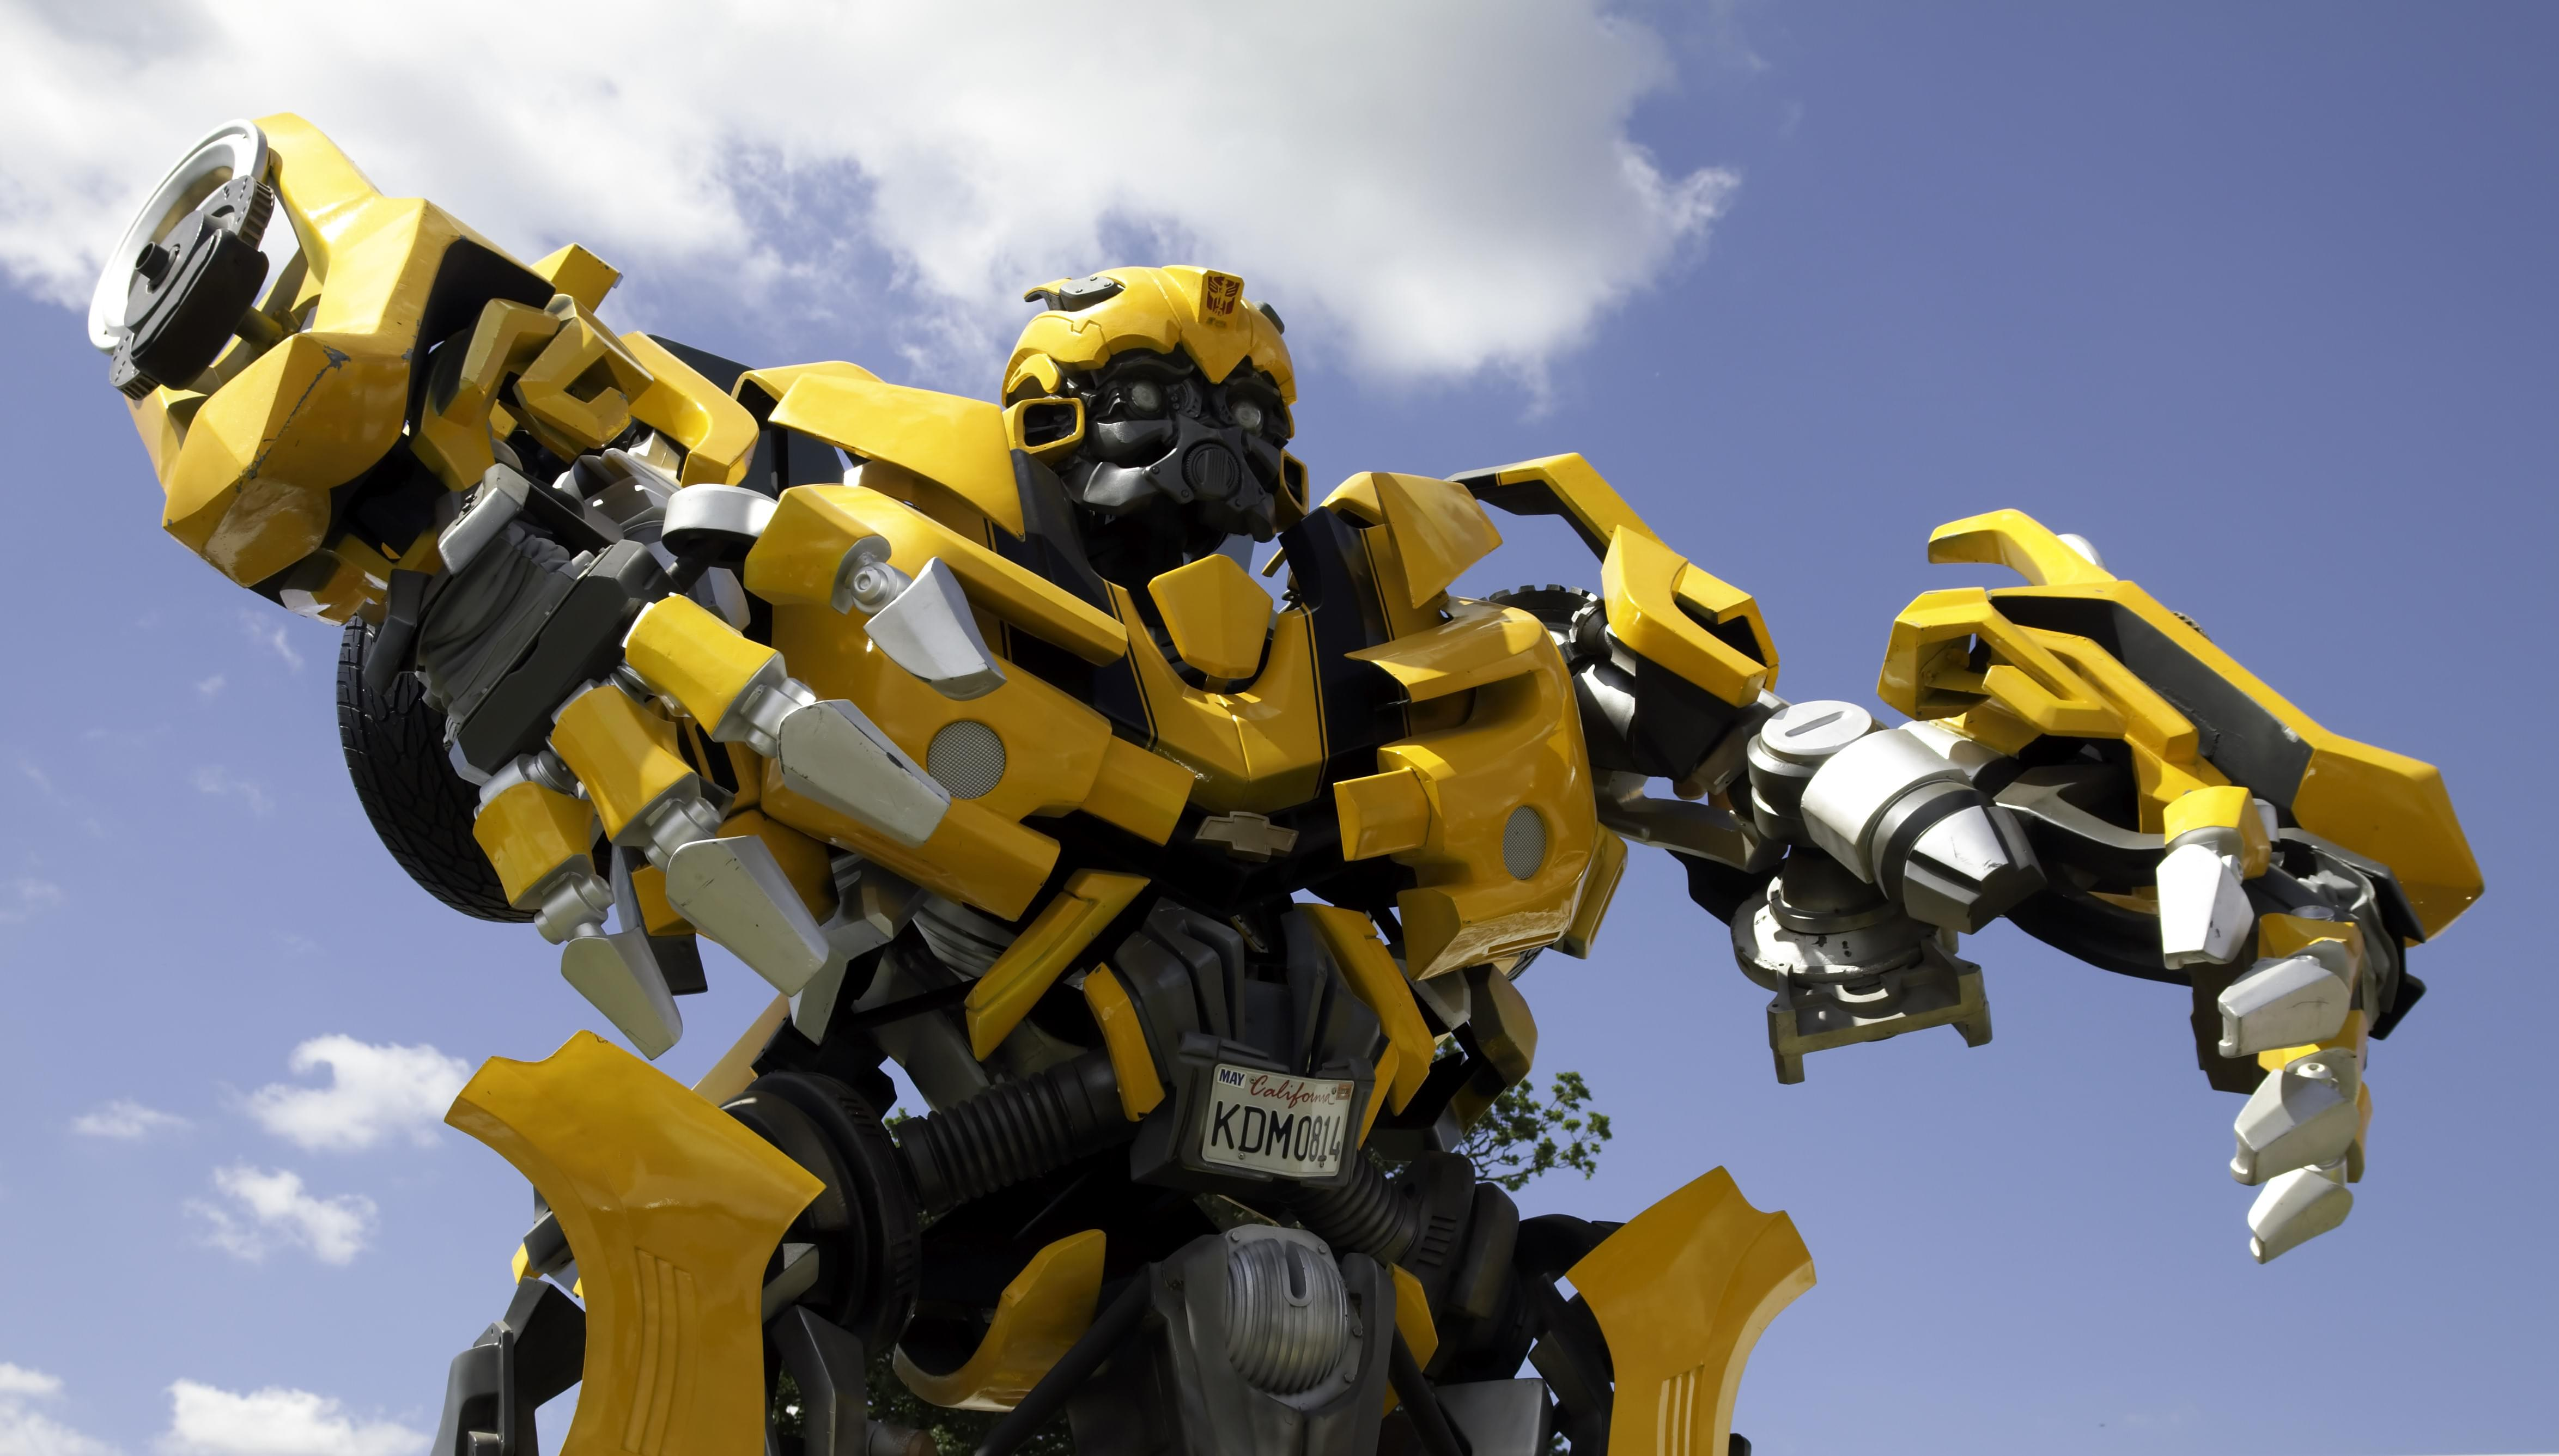 """Check out new trailers for the """"Transformers"""" spin-off """"Bumblebee"""", """"The Lego Movie 2: The Second Part"""", and """"Mortal Engines"""""""